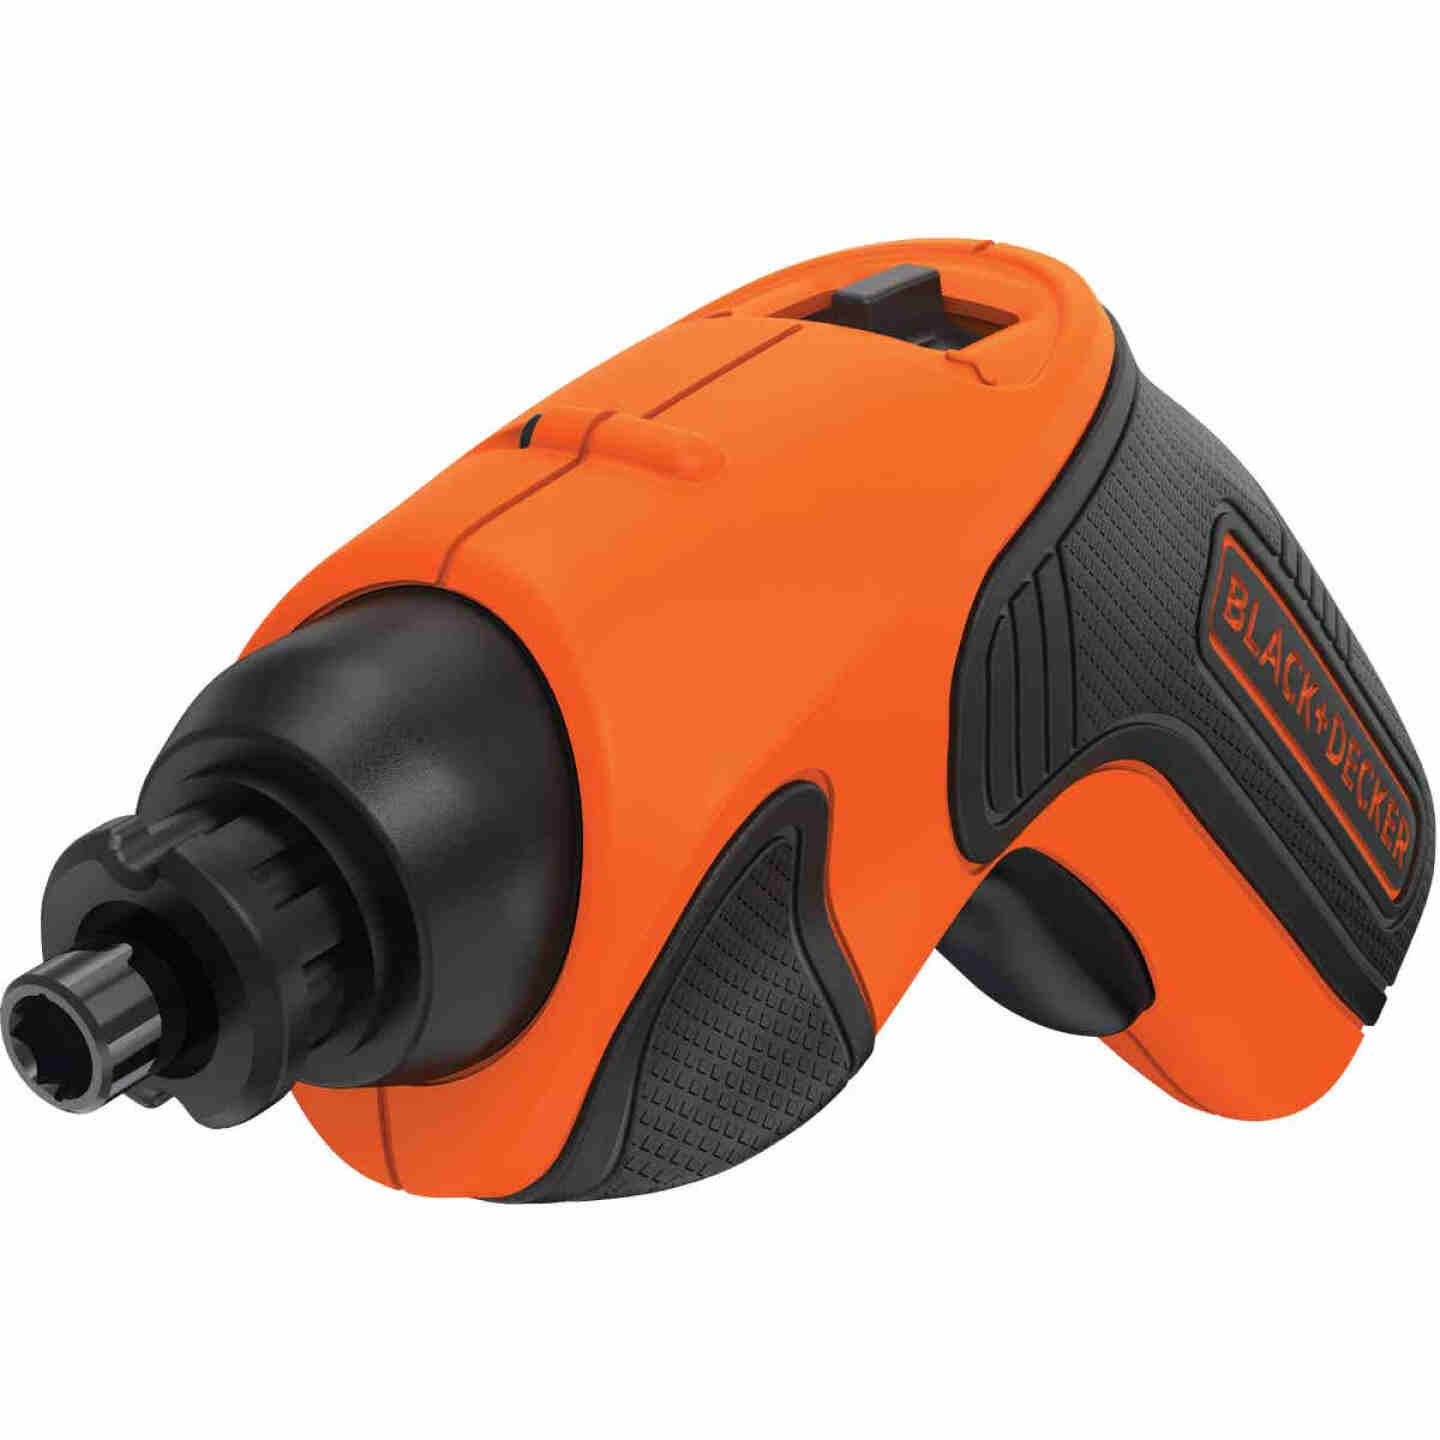 Black & Decker 4-Volt MAX Lithium-Ion 1/4 In. Cordless Screwdriver Image 8